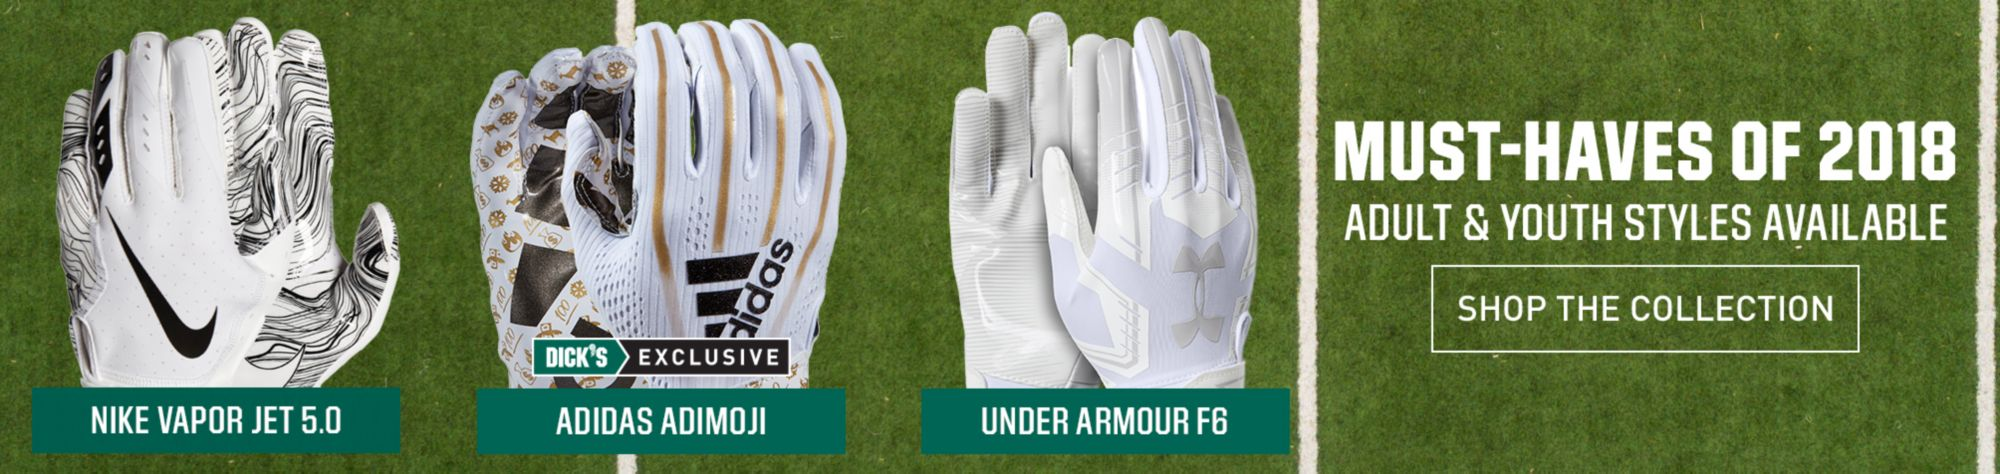 These are the must have/key item/new gloves for 2018.